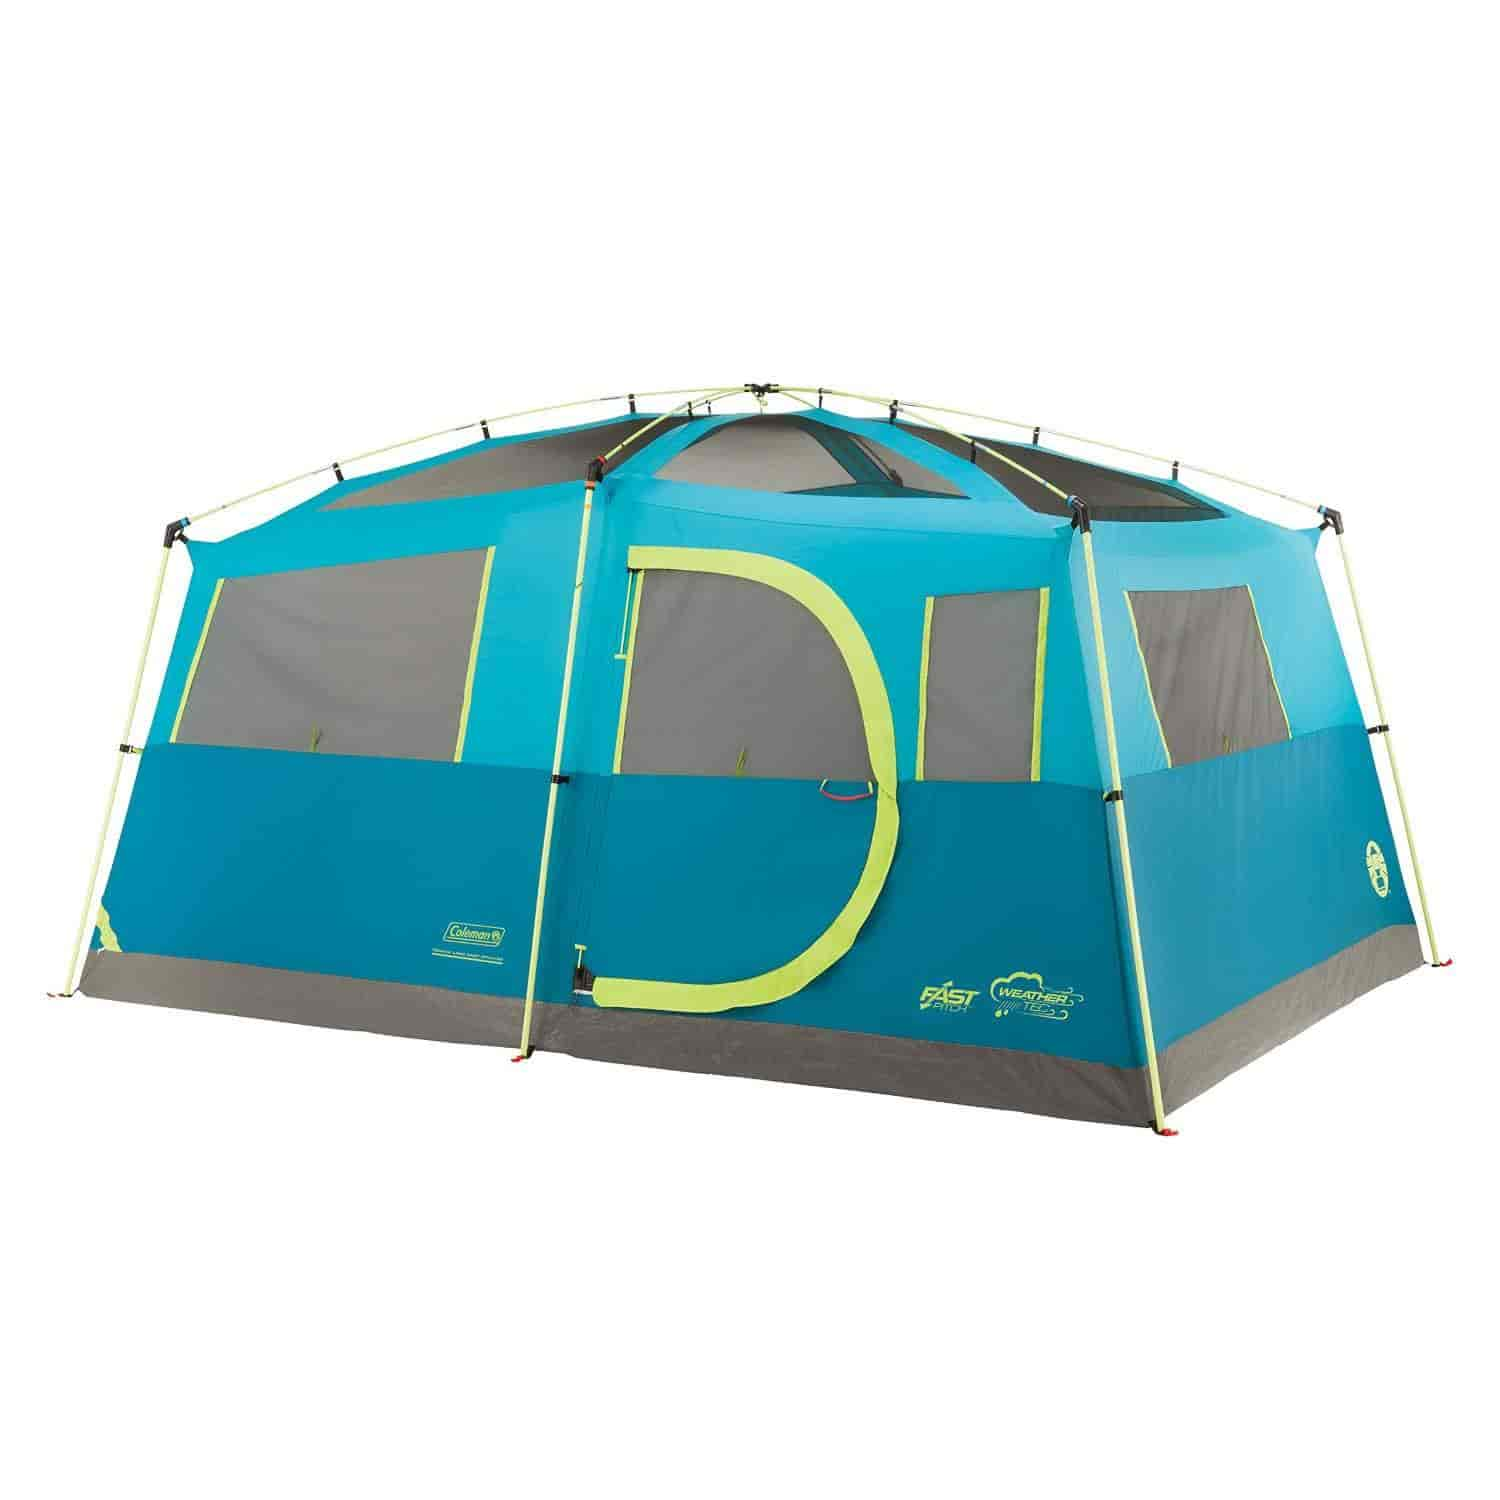 Coleman 8 Person Tenaya Lake Fast Pitch Cabin Tent with Closet  sc 1 st  Justdial & Buy Coleman 8 Person Tenaya Lake Fast Pitch Cabin Tent with Closet ...